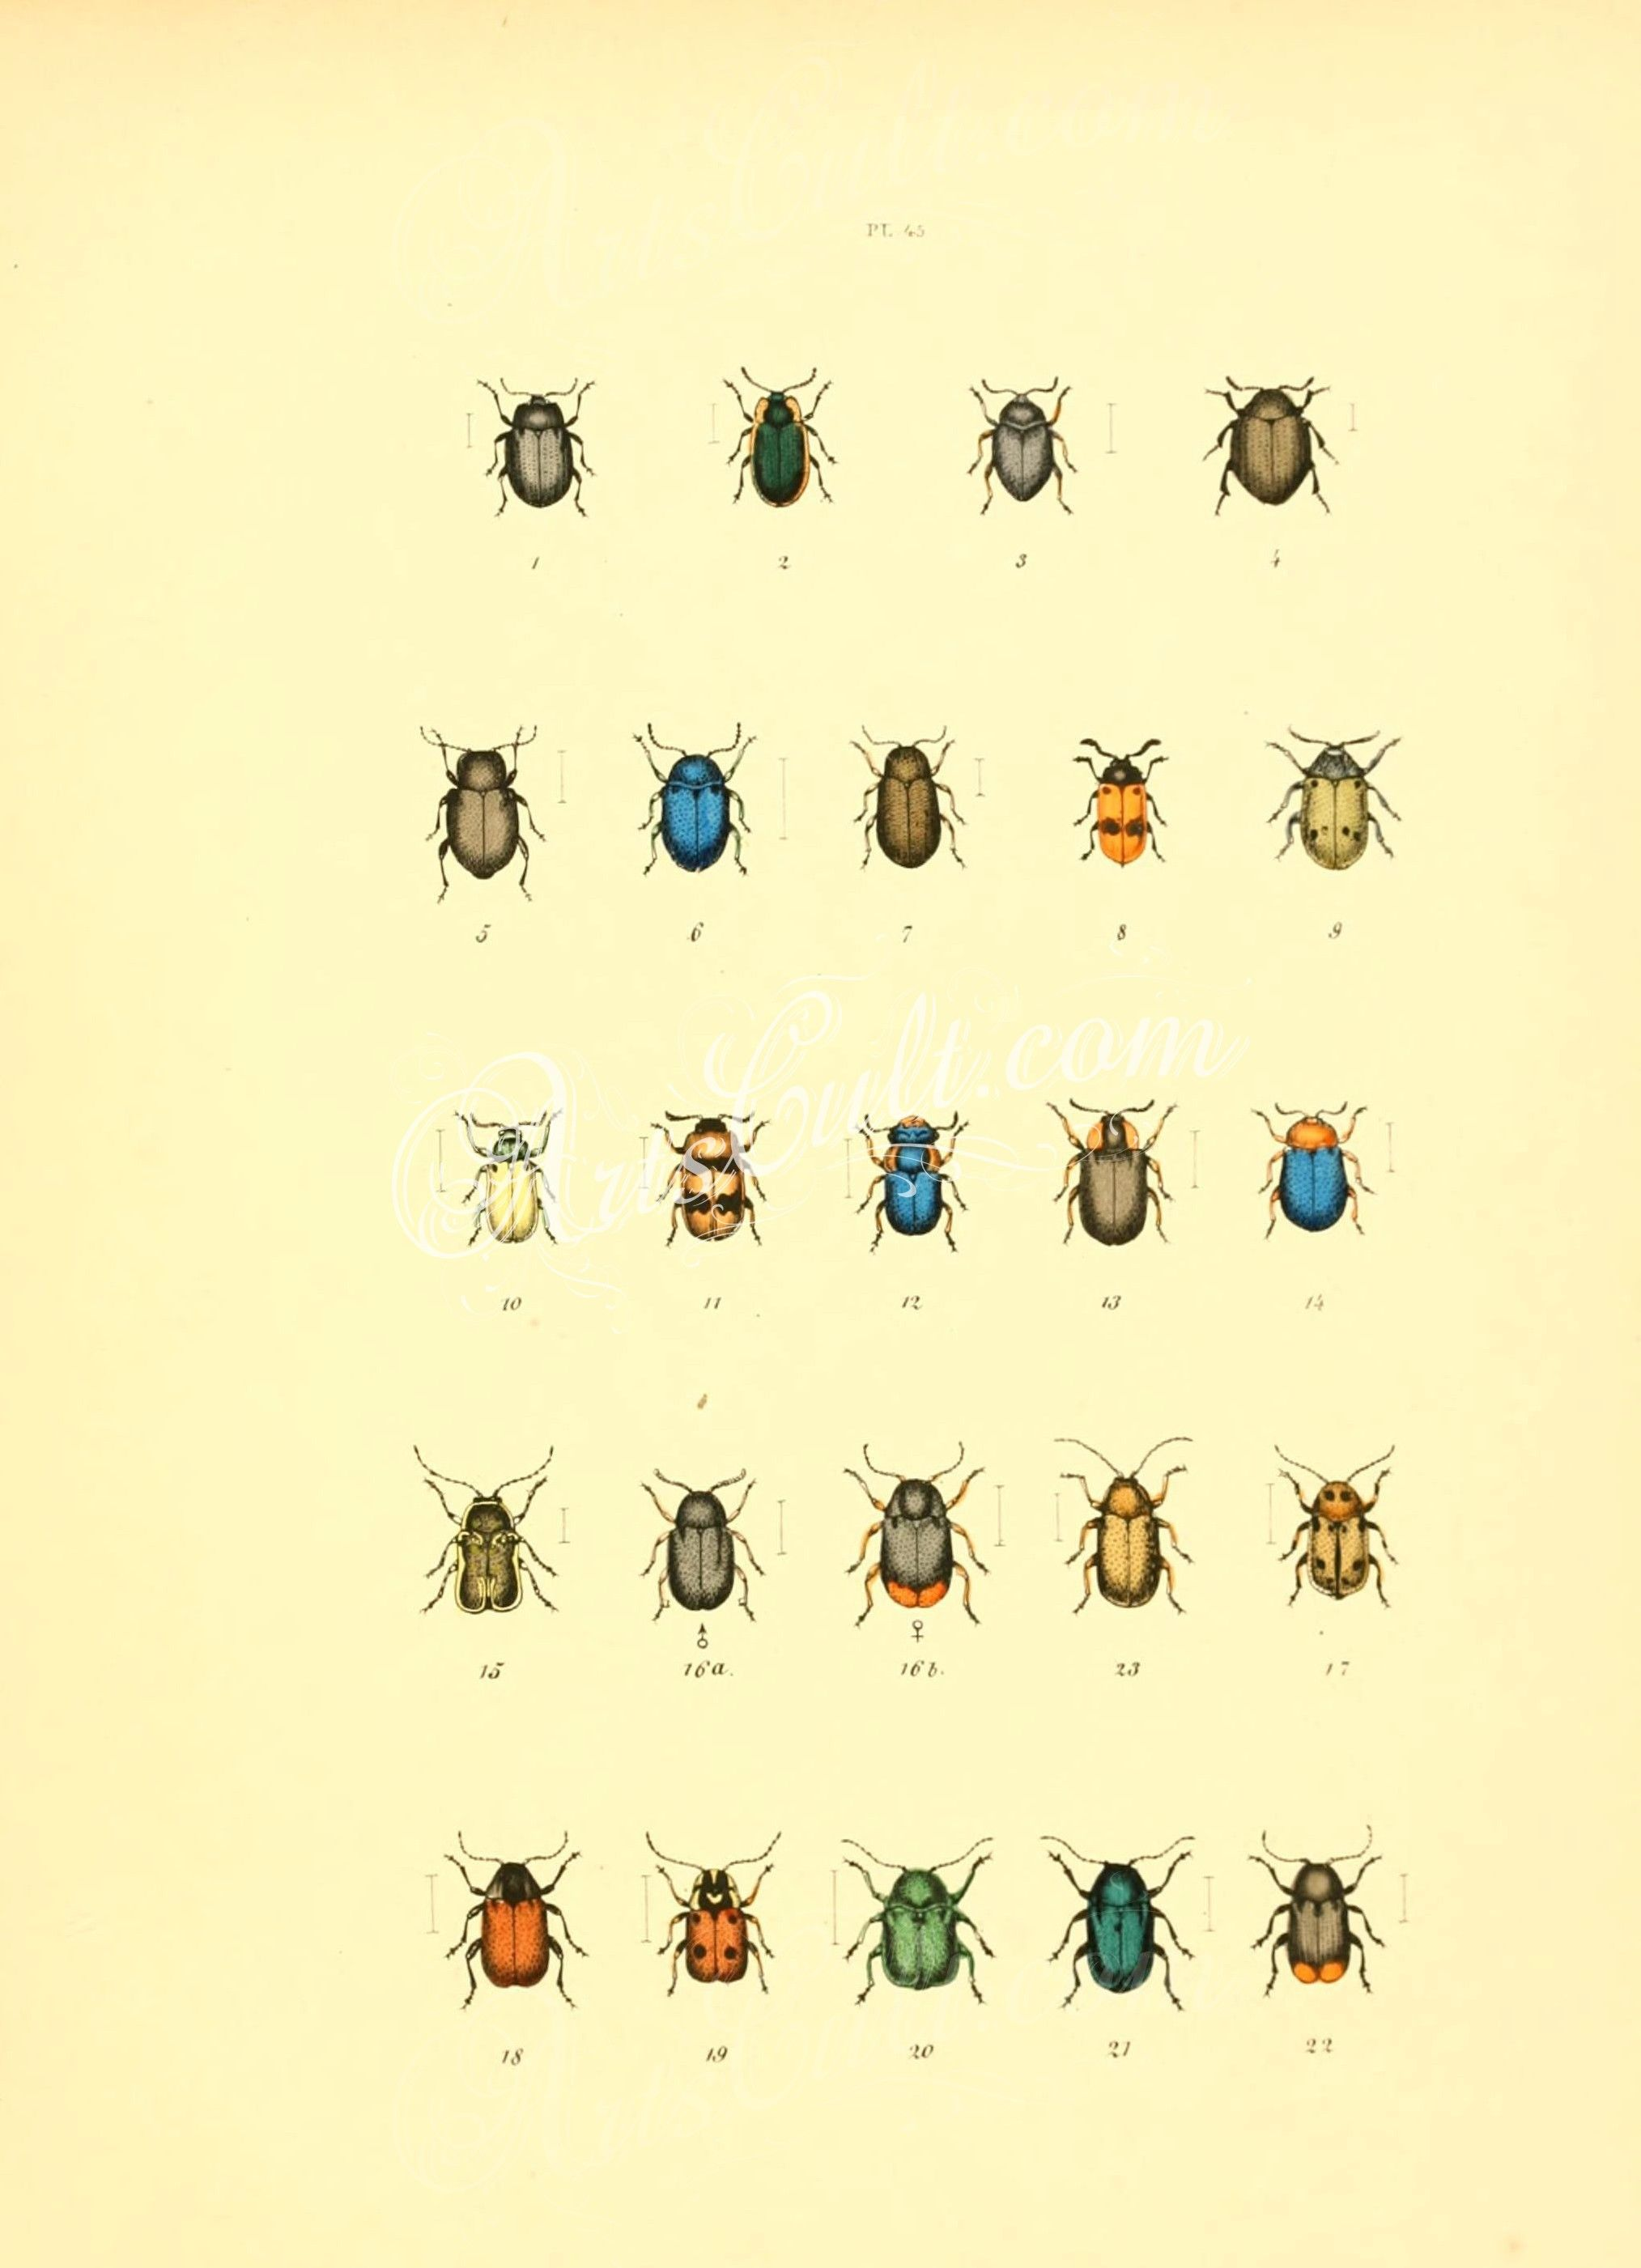 004-Beetle, coleoptera ... | ArtsCult.com - best | Pinterest ...